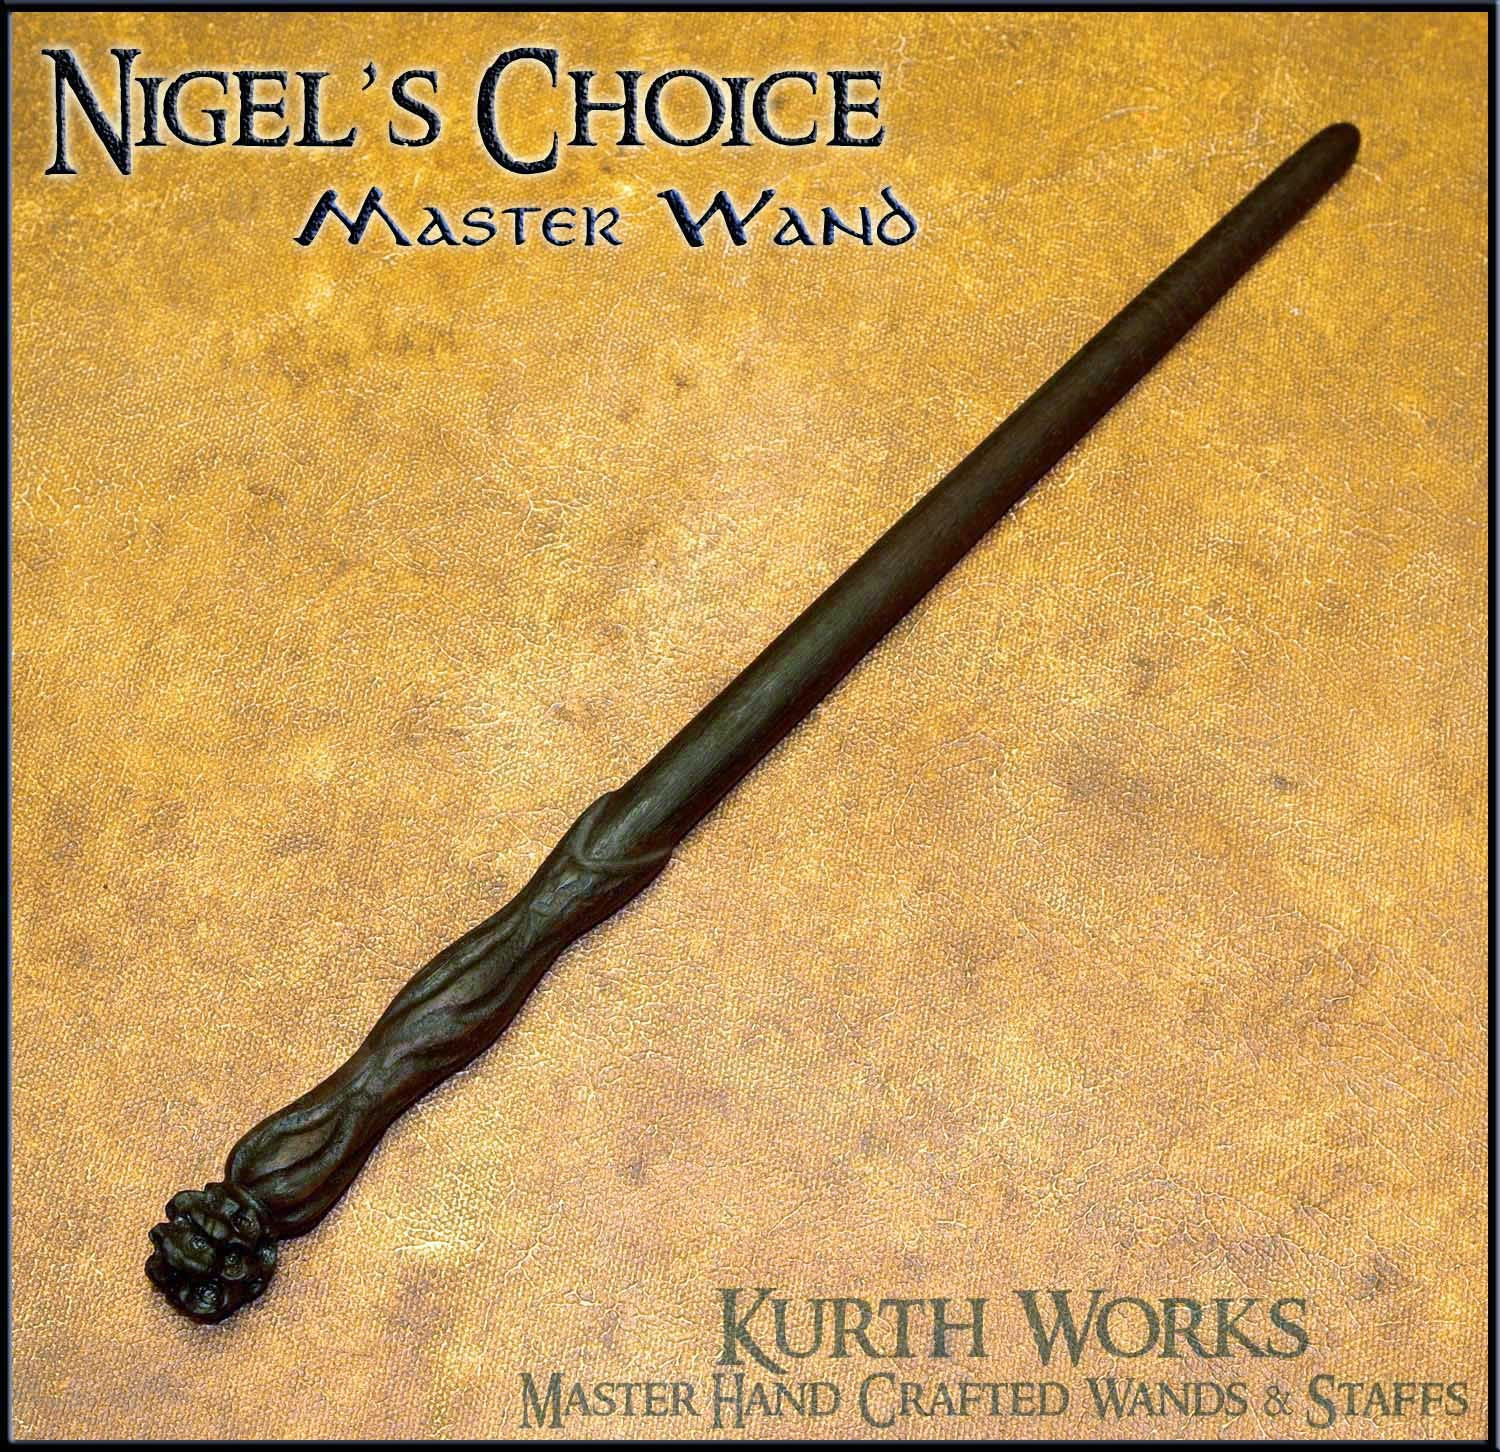 Nigel's Choice Wizard Magic Wand